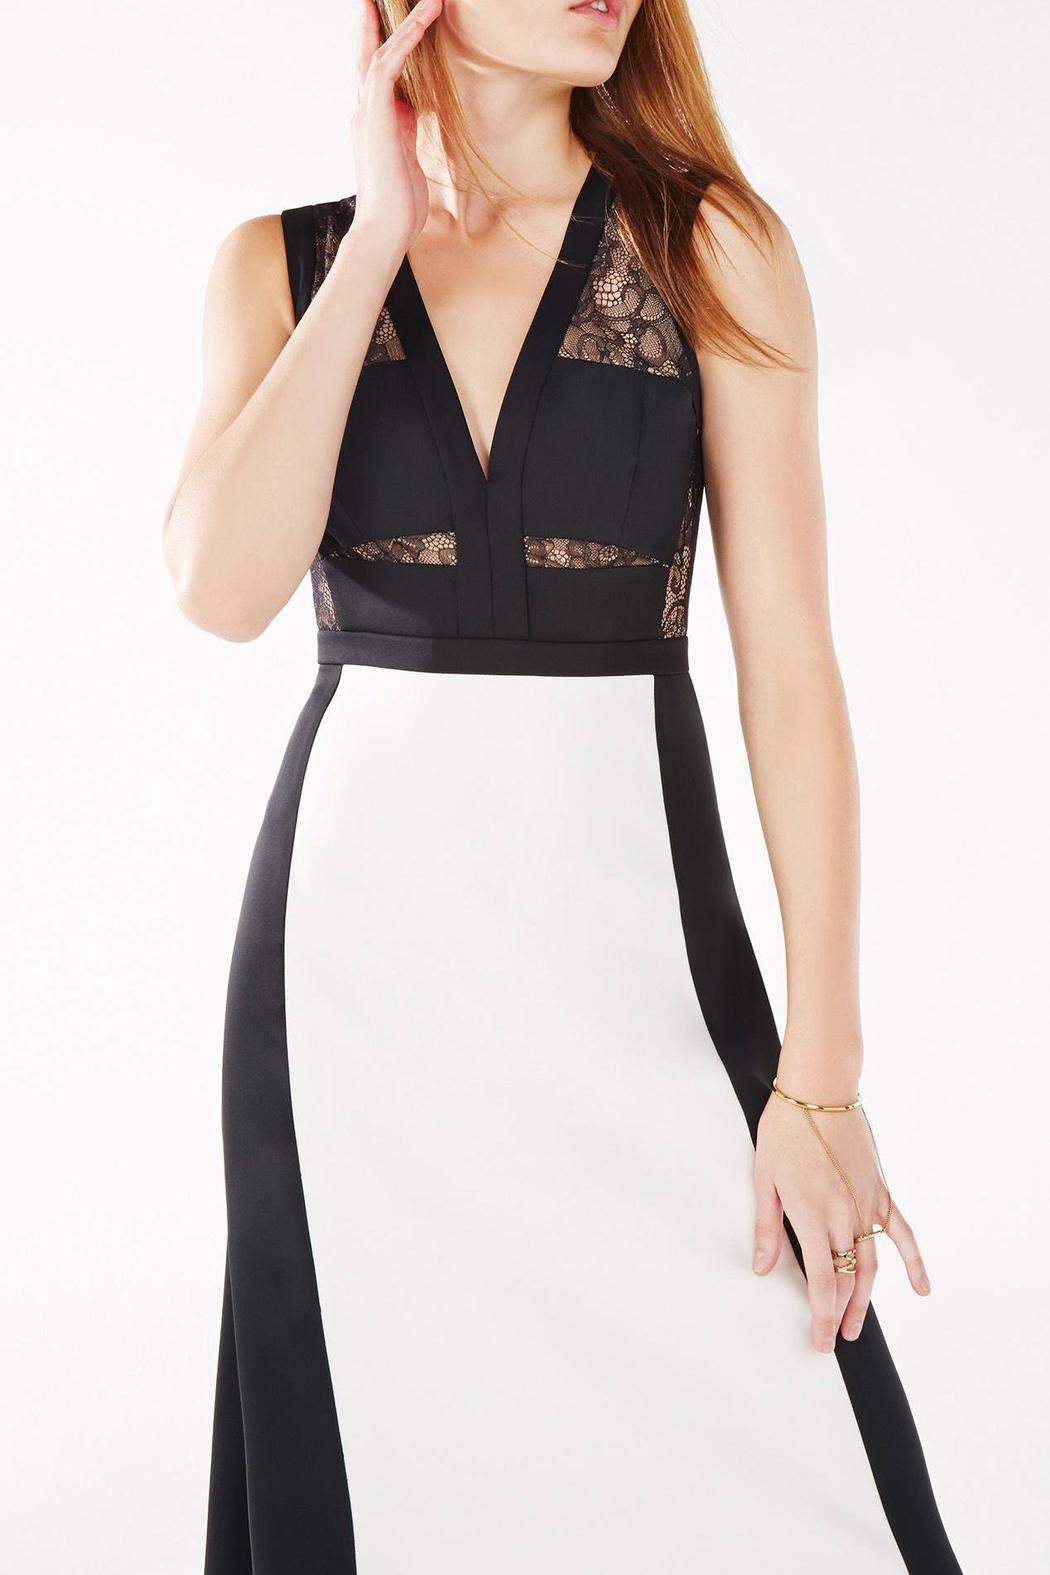 Bcbg Max Azria Black Amp Off White Evening Gown From Georgia